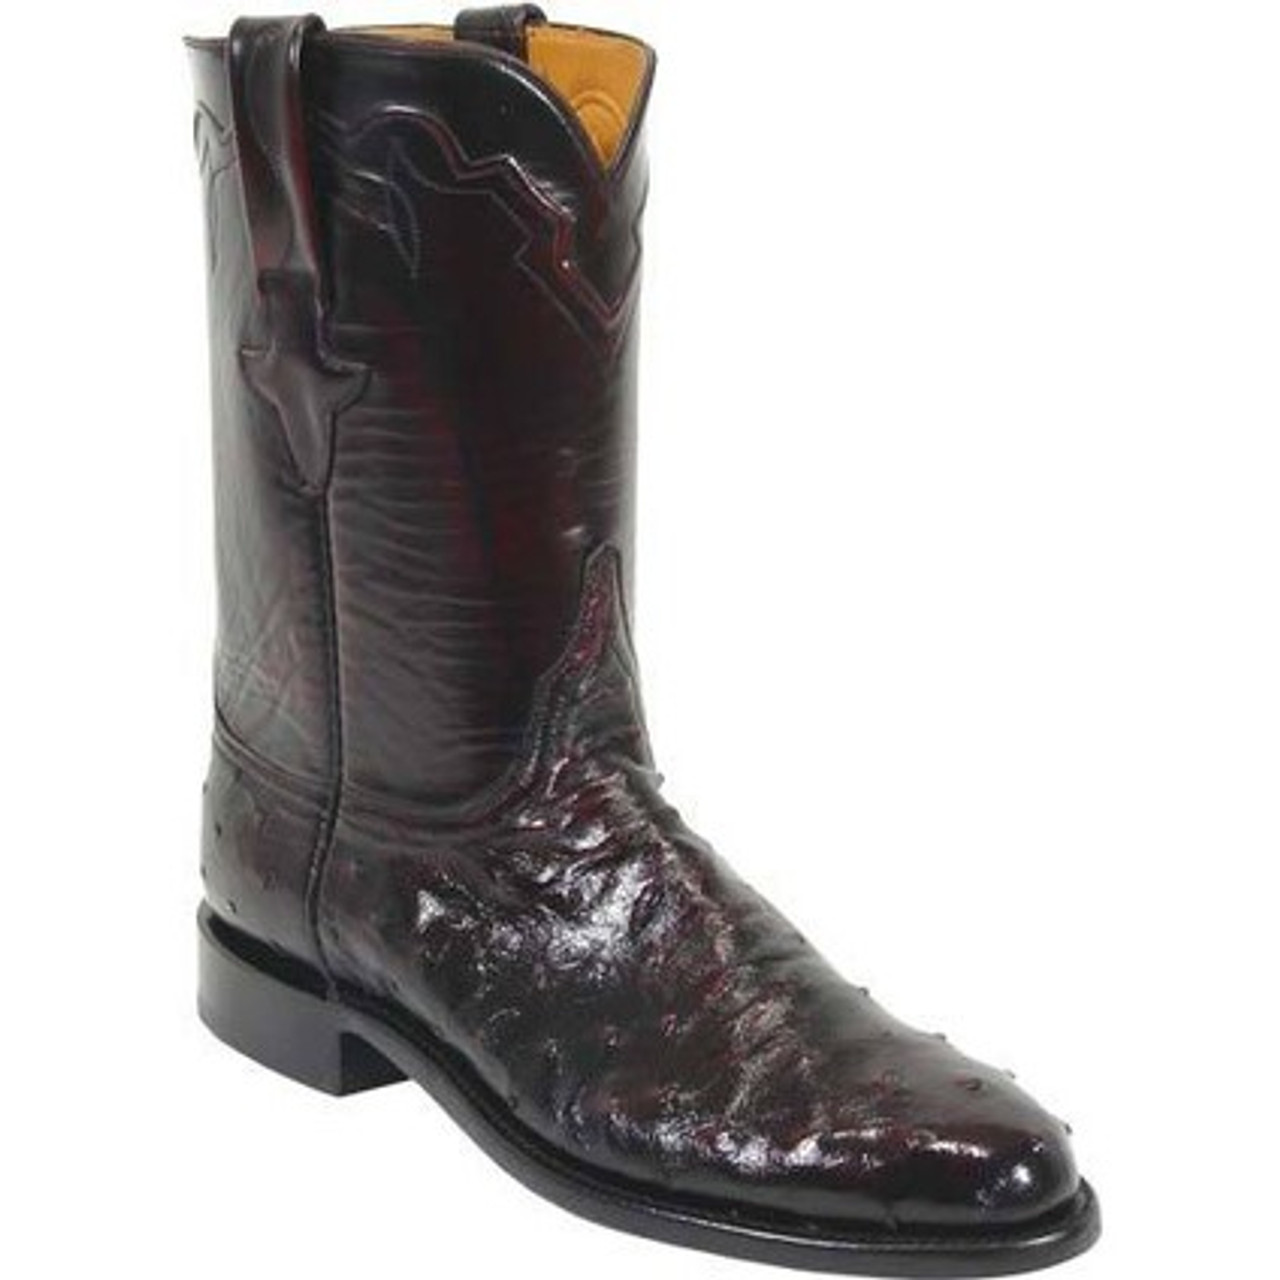 31f76caa5db Lucchese Men's Boots - Classics Hand Made - Black Cherry Brush Off - FQ  Ostrich / Goat